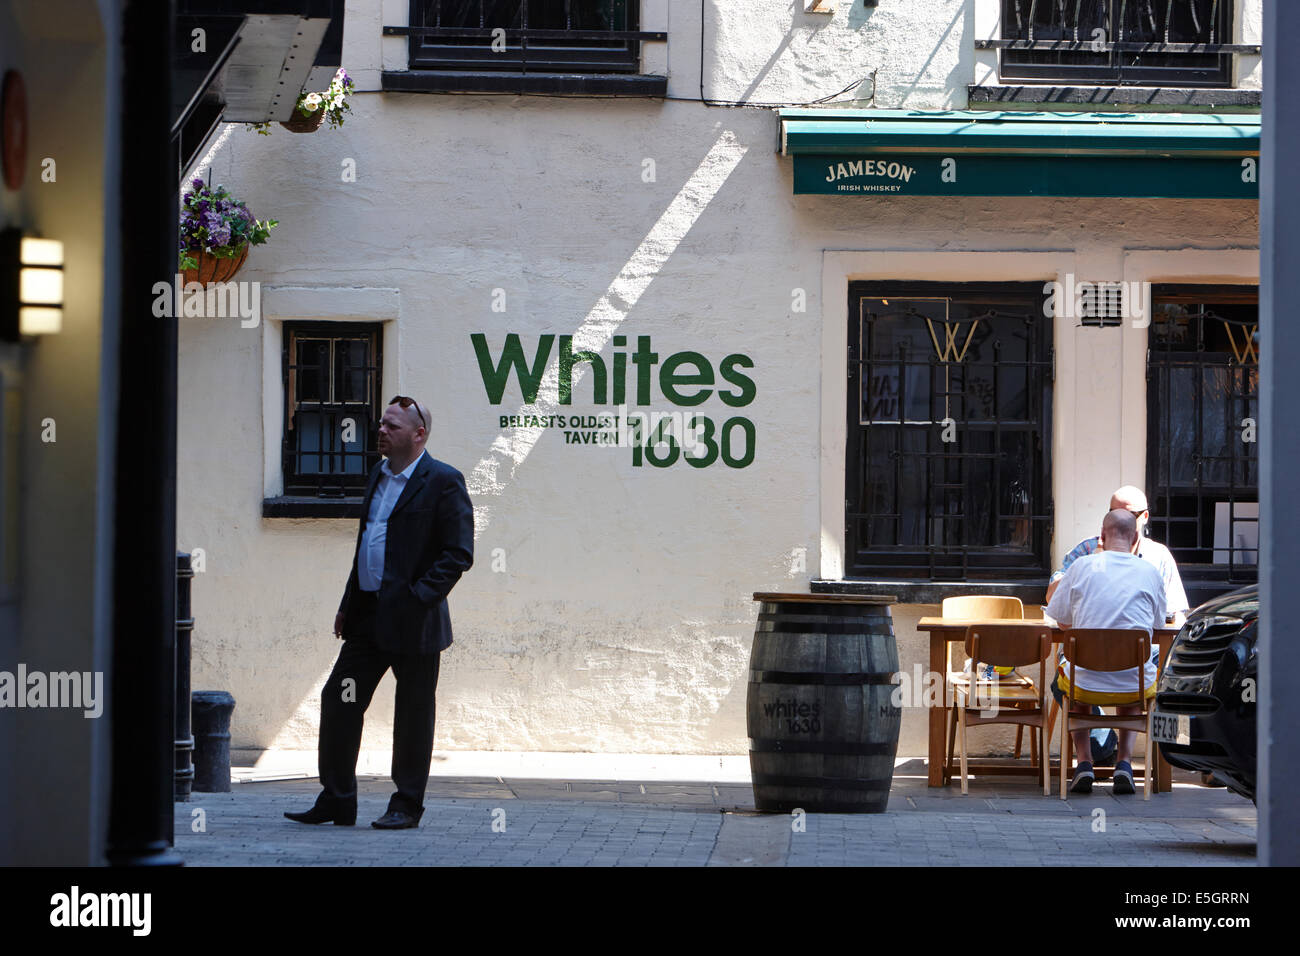 whites tavern belfasts oldest pub down an alley in cathedral quarter Belfast city centre - Stock Image